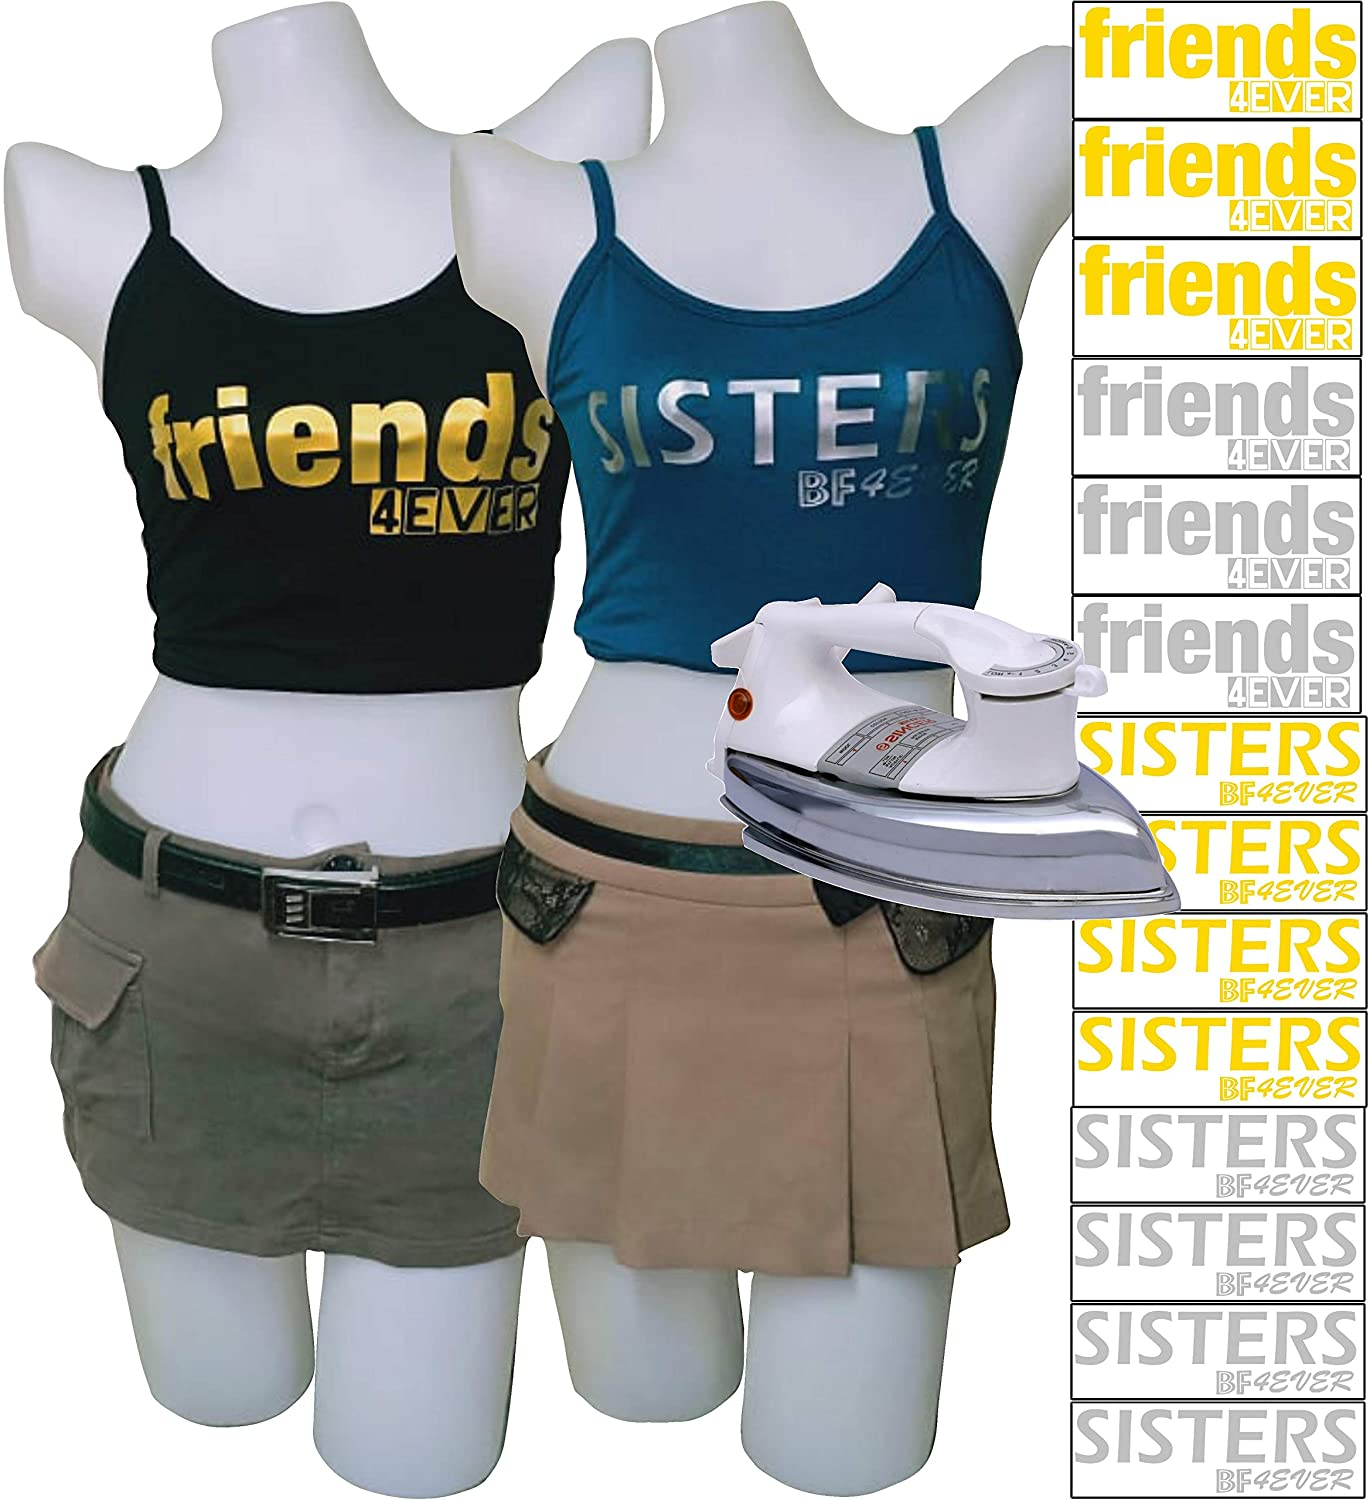 PrinturShirt BFF Sister Shirt | Bestie Shirts | Matching BFF Shirts | Unbiological Sister Shirt for Women, Teen Girls - Iron On Heat Transfer Vinyl Set - 14pcs, Gold and Silver - Easy To Use, Savings